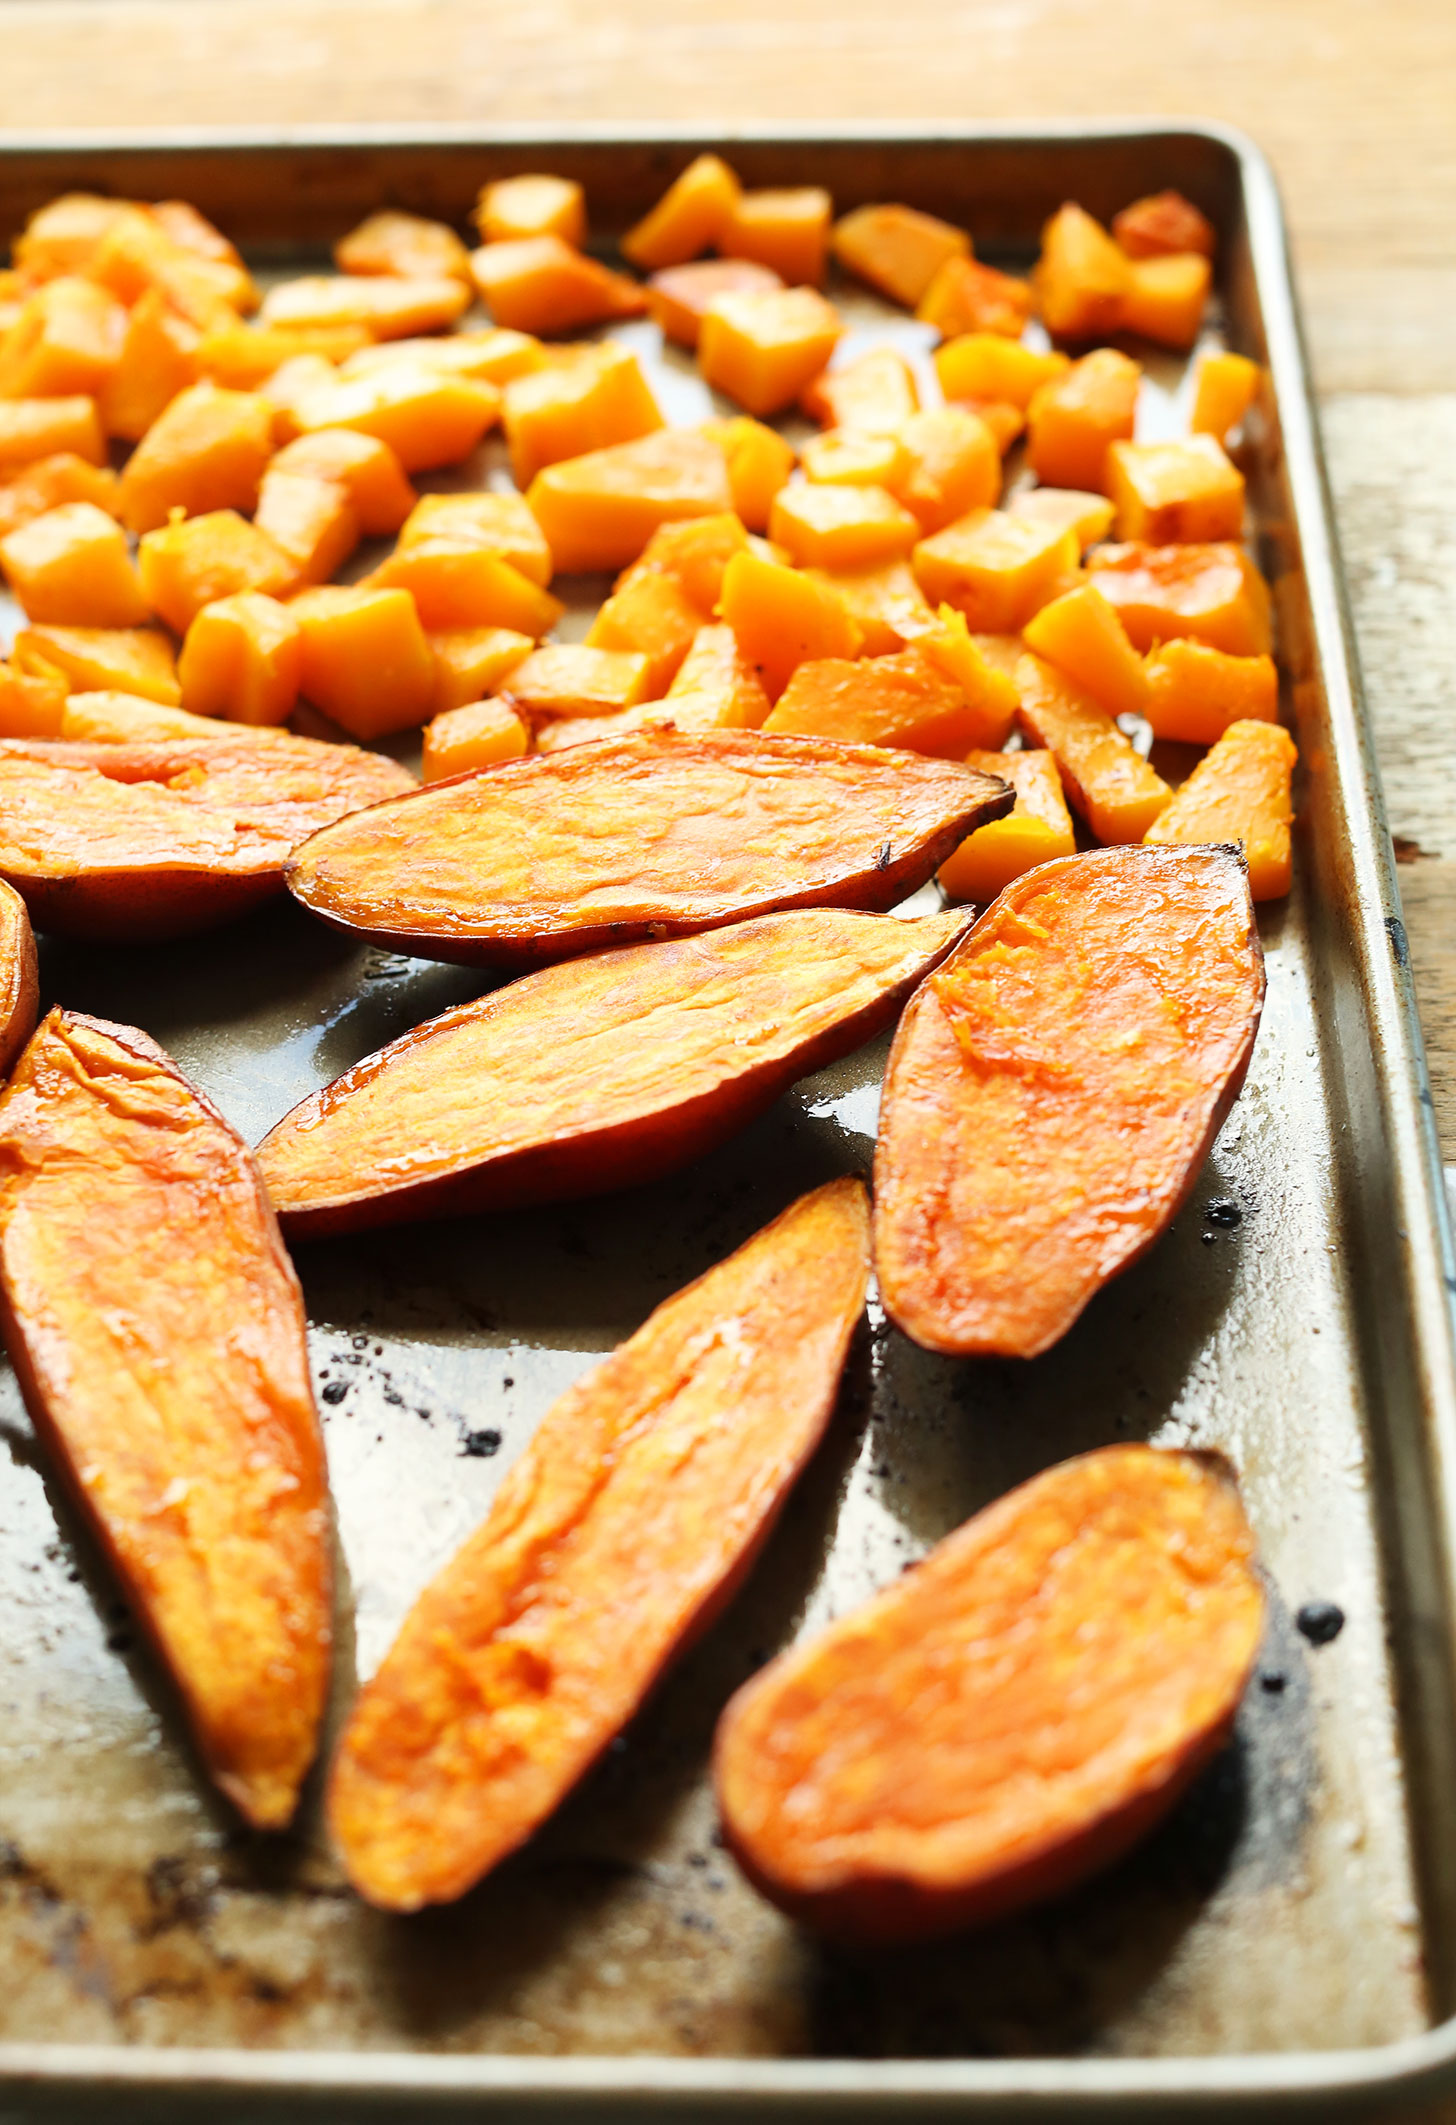 Baking sheet with sweet potatoes and butternut squash for roasting